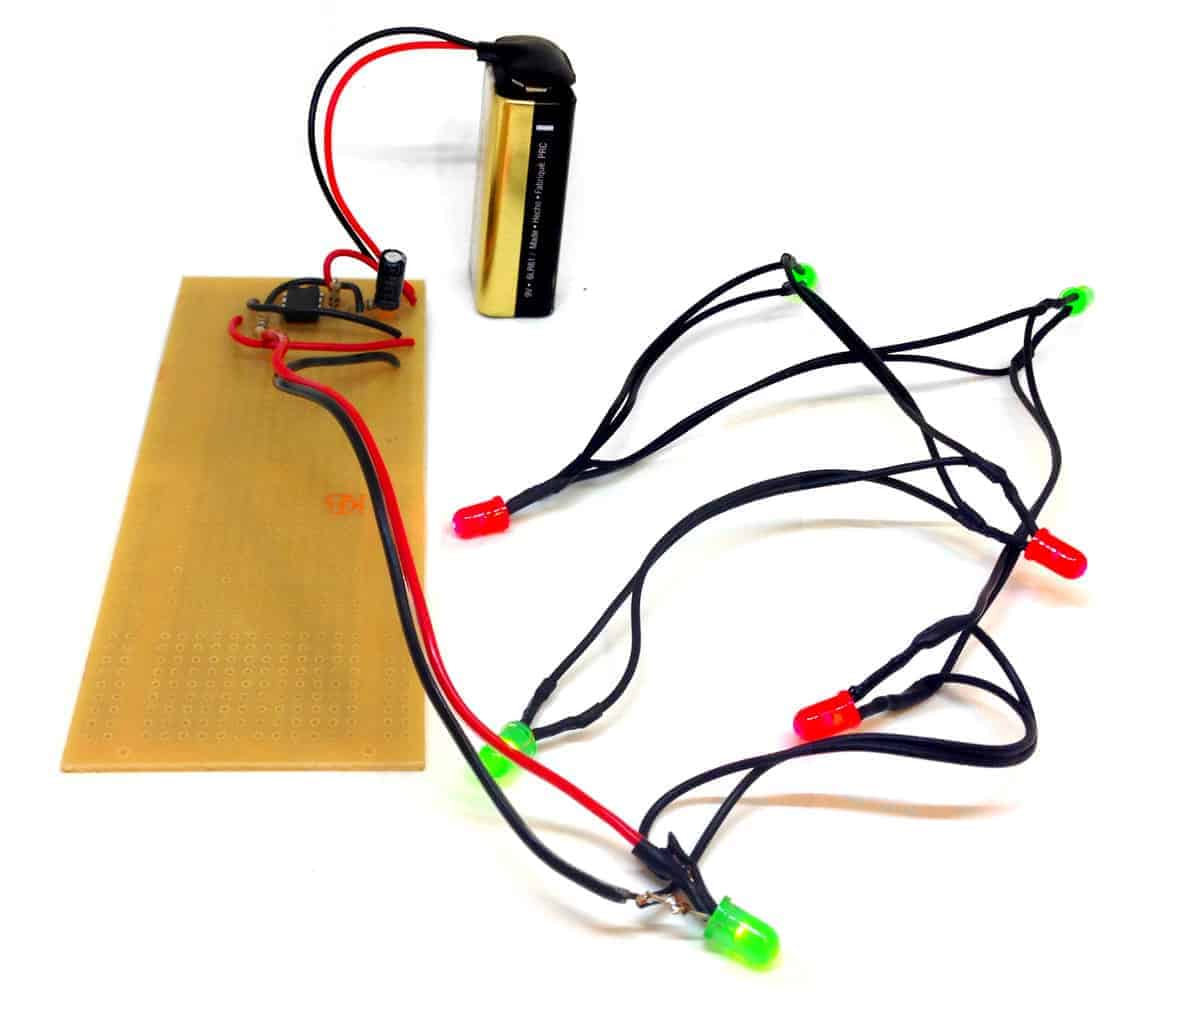 Blinking Christmas Lights Build Electronic Circuits 10 Dancing Leds Circuit